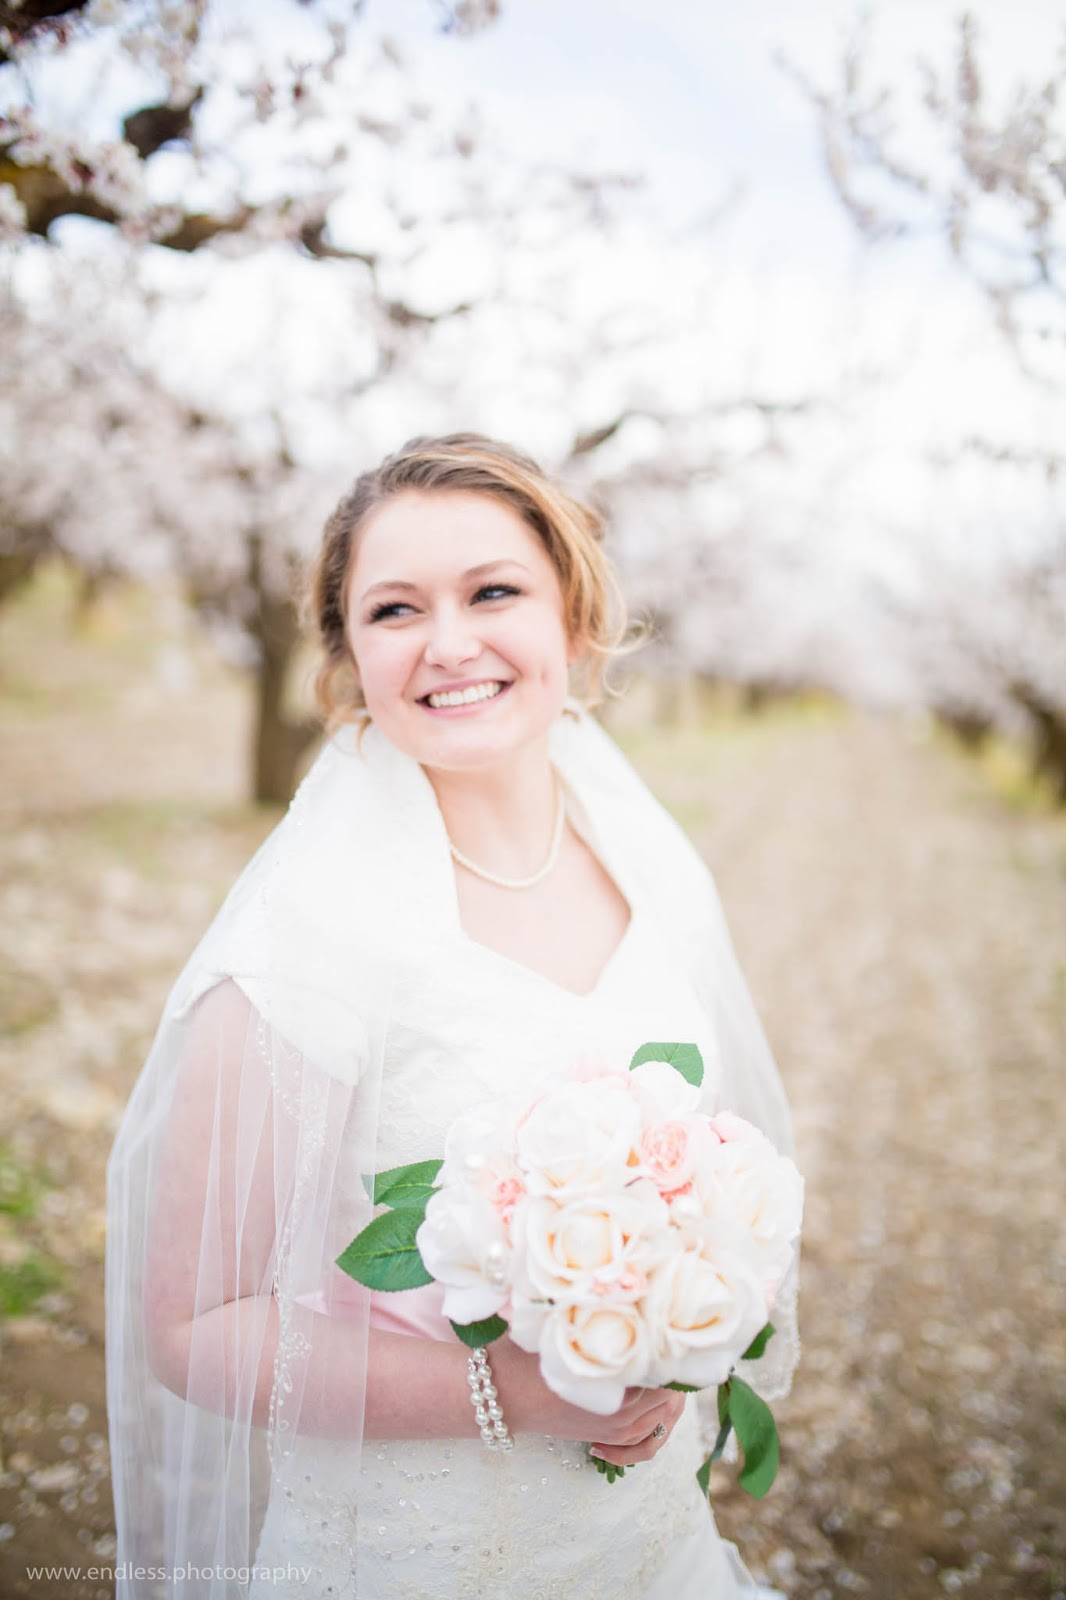 Logan, Utah, Cache Valley, Ogden, Brigham City, Salt Lake City, Wedding, Photographer, Photography, Bridals, Formals, Wedding, LDS, Orchard, Spring, Blossoms, Summer, Sun, Smiles, Bride, Groom